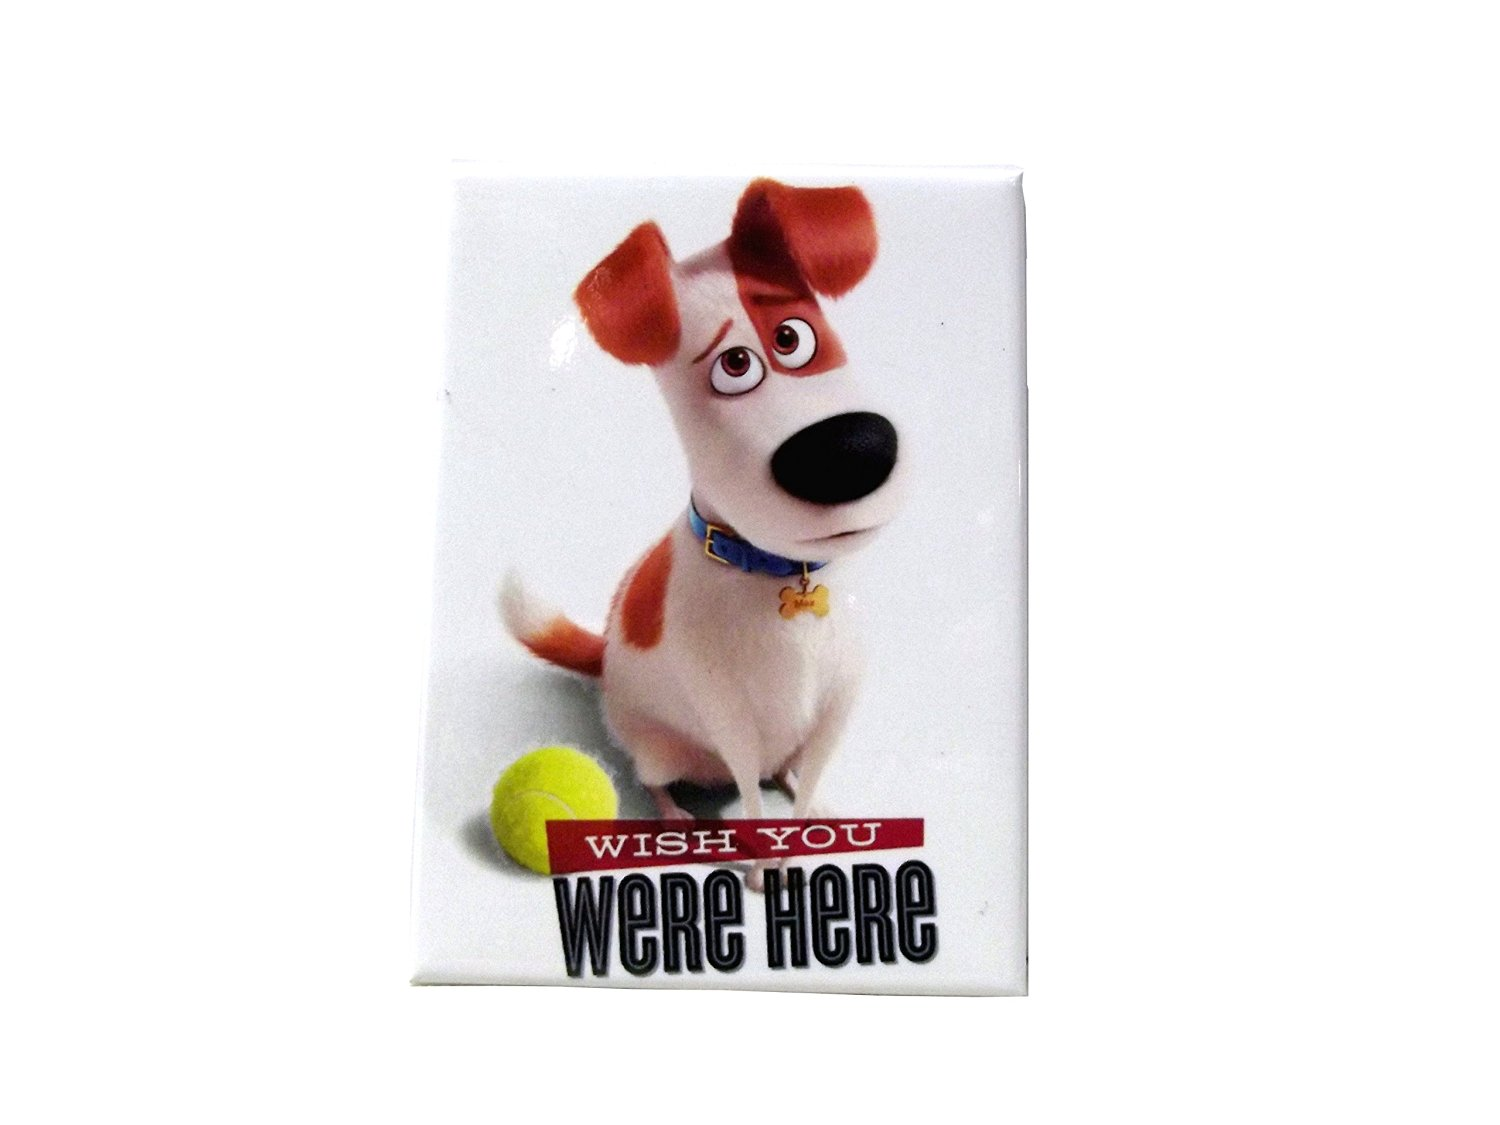 The Secret Life of Pets Wish You Were Home Magnet